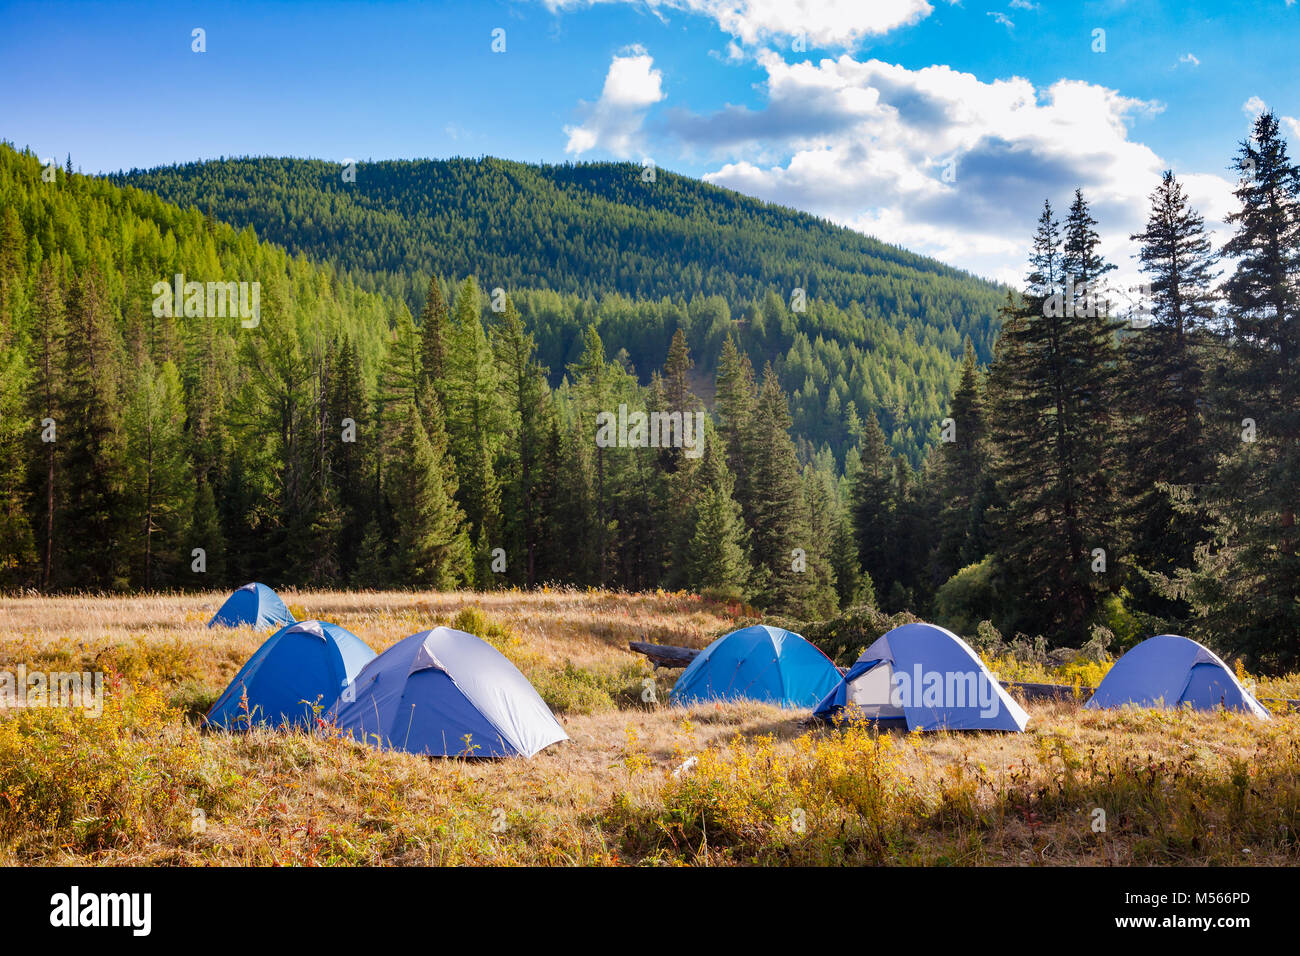 Camping tents on a river shore in wild camping, Altai Mountains, Western Mongolia - Stock Image